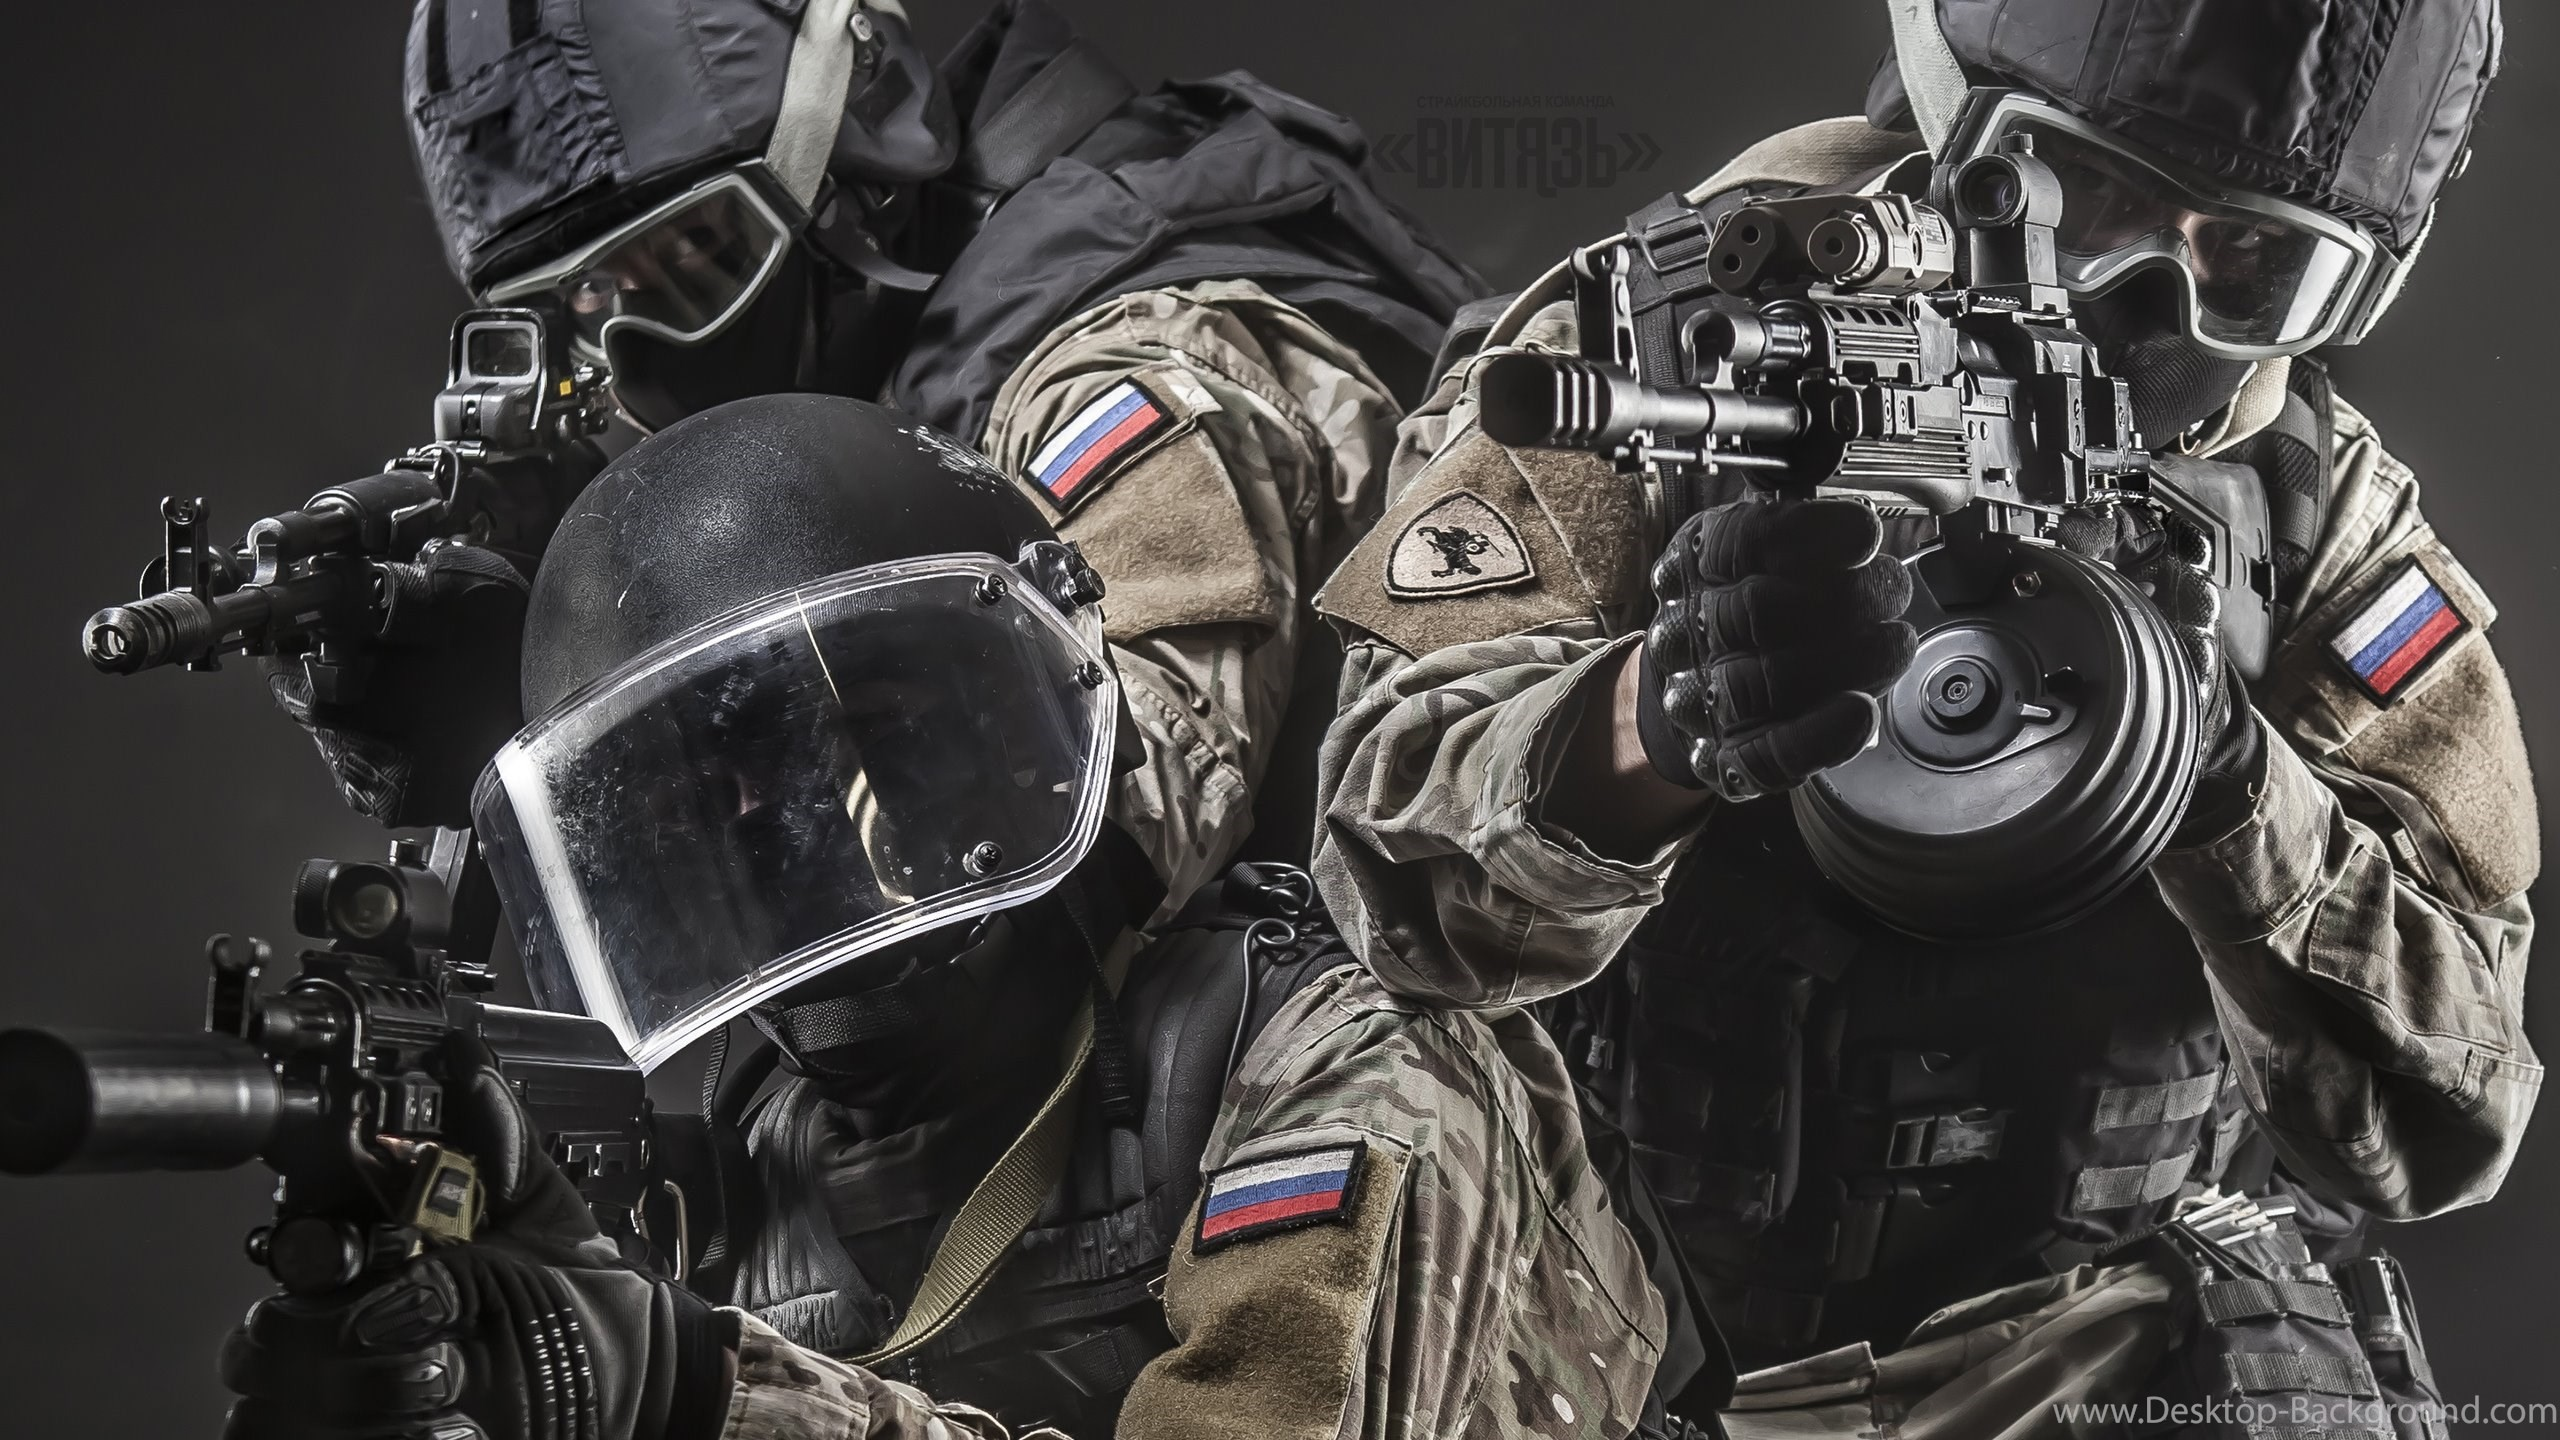 Res: 2560x1440, Download Wallpapers  Swat, Airsoft Team, Knight, Airsoft HD